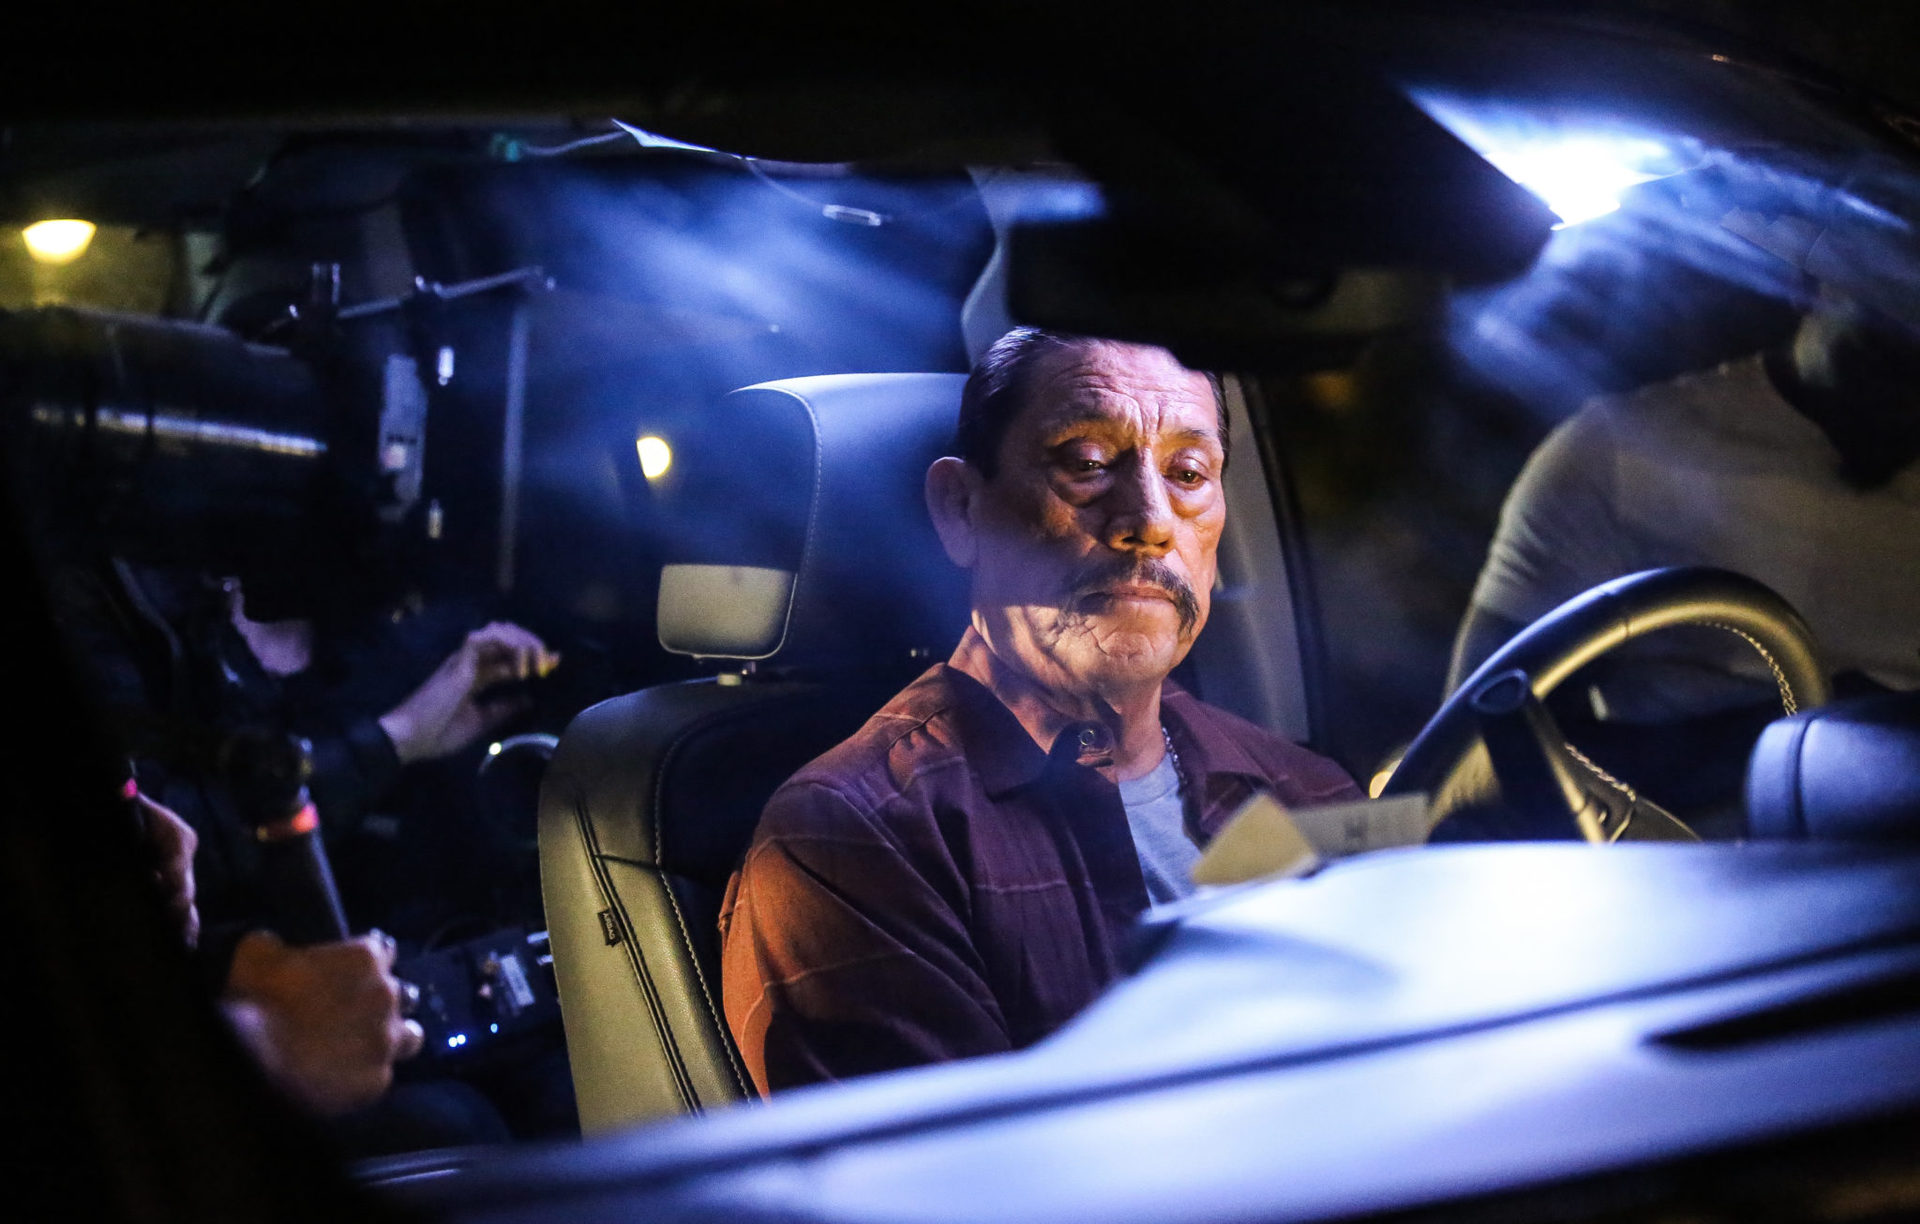 Danny-Trejo-Set-Picture-Every-Nine-Hours-James-Kicklighter-Still